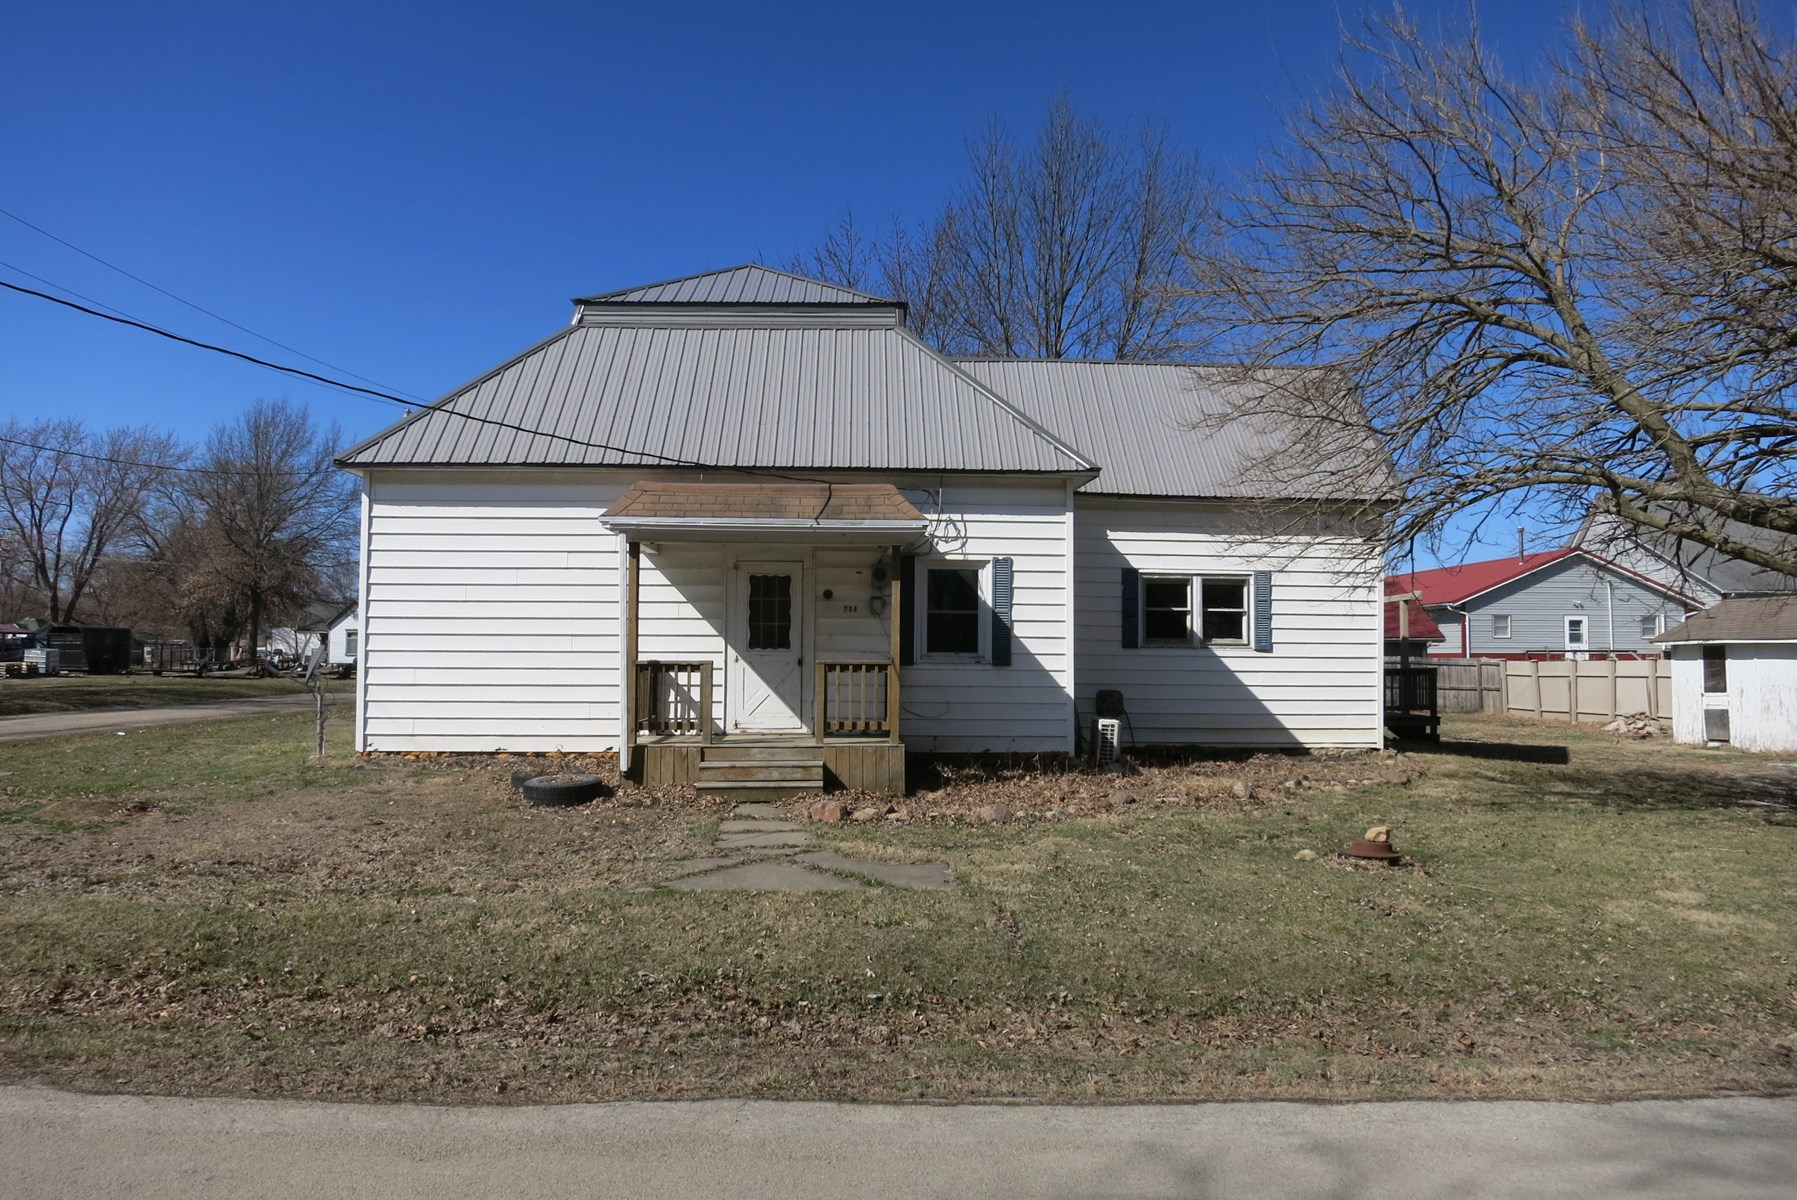 For Sale 2 Bedroom Home in Gilman City MO